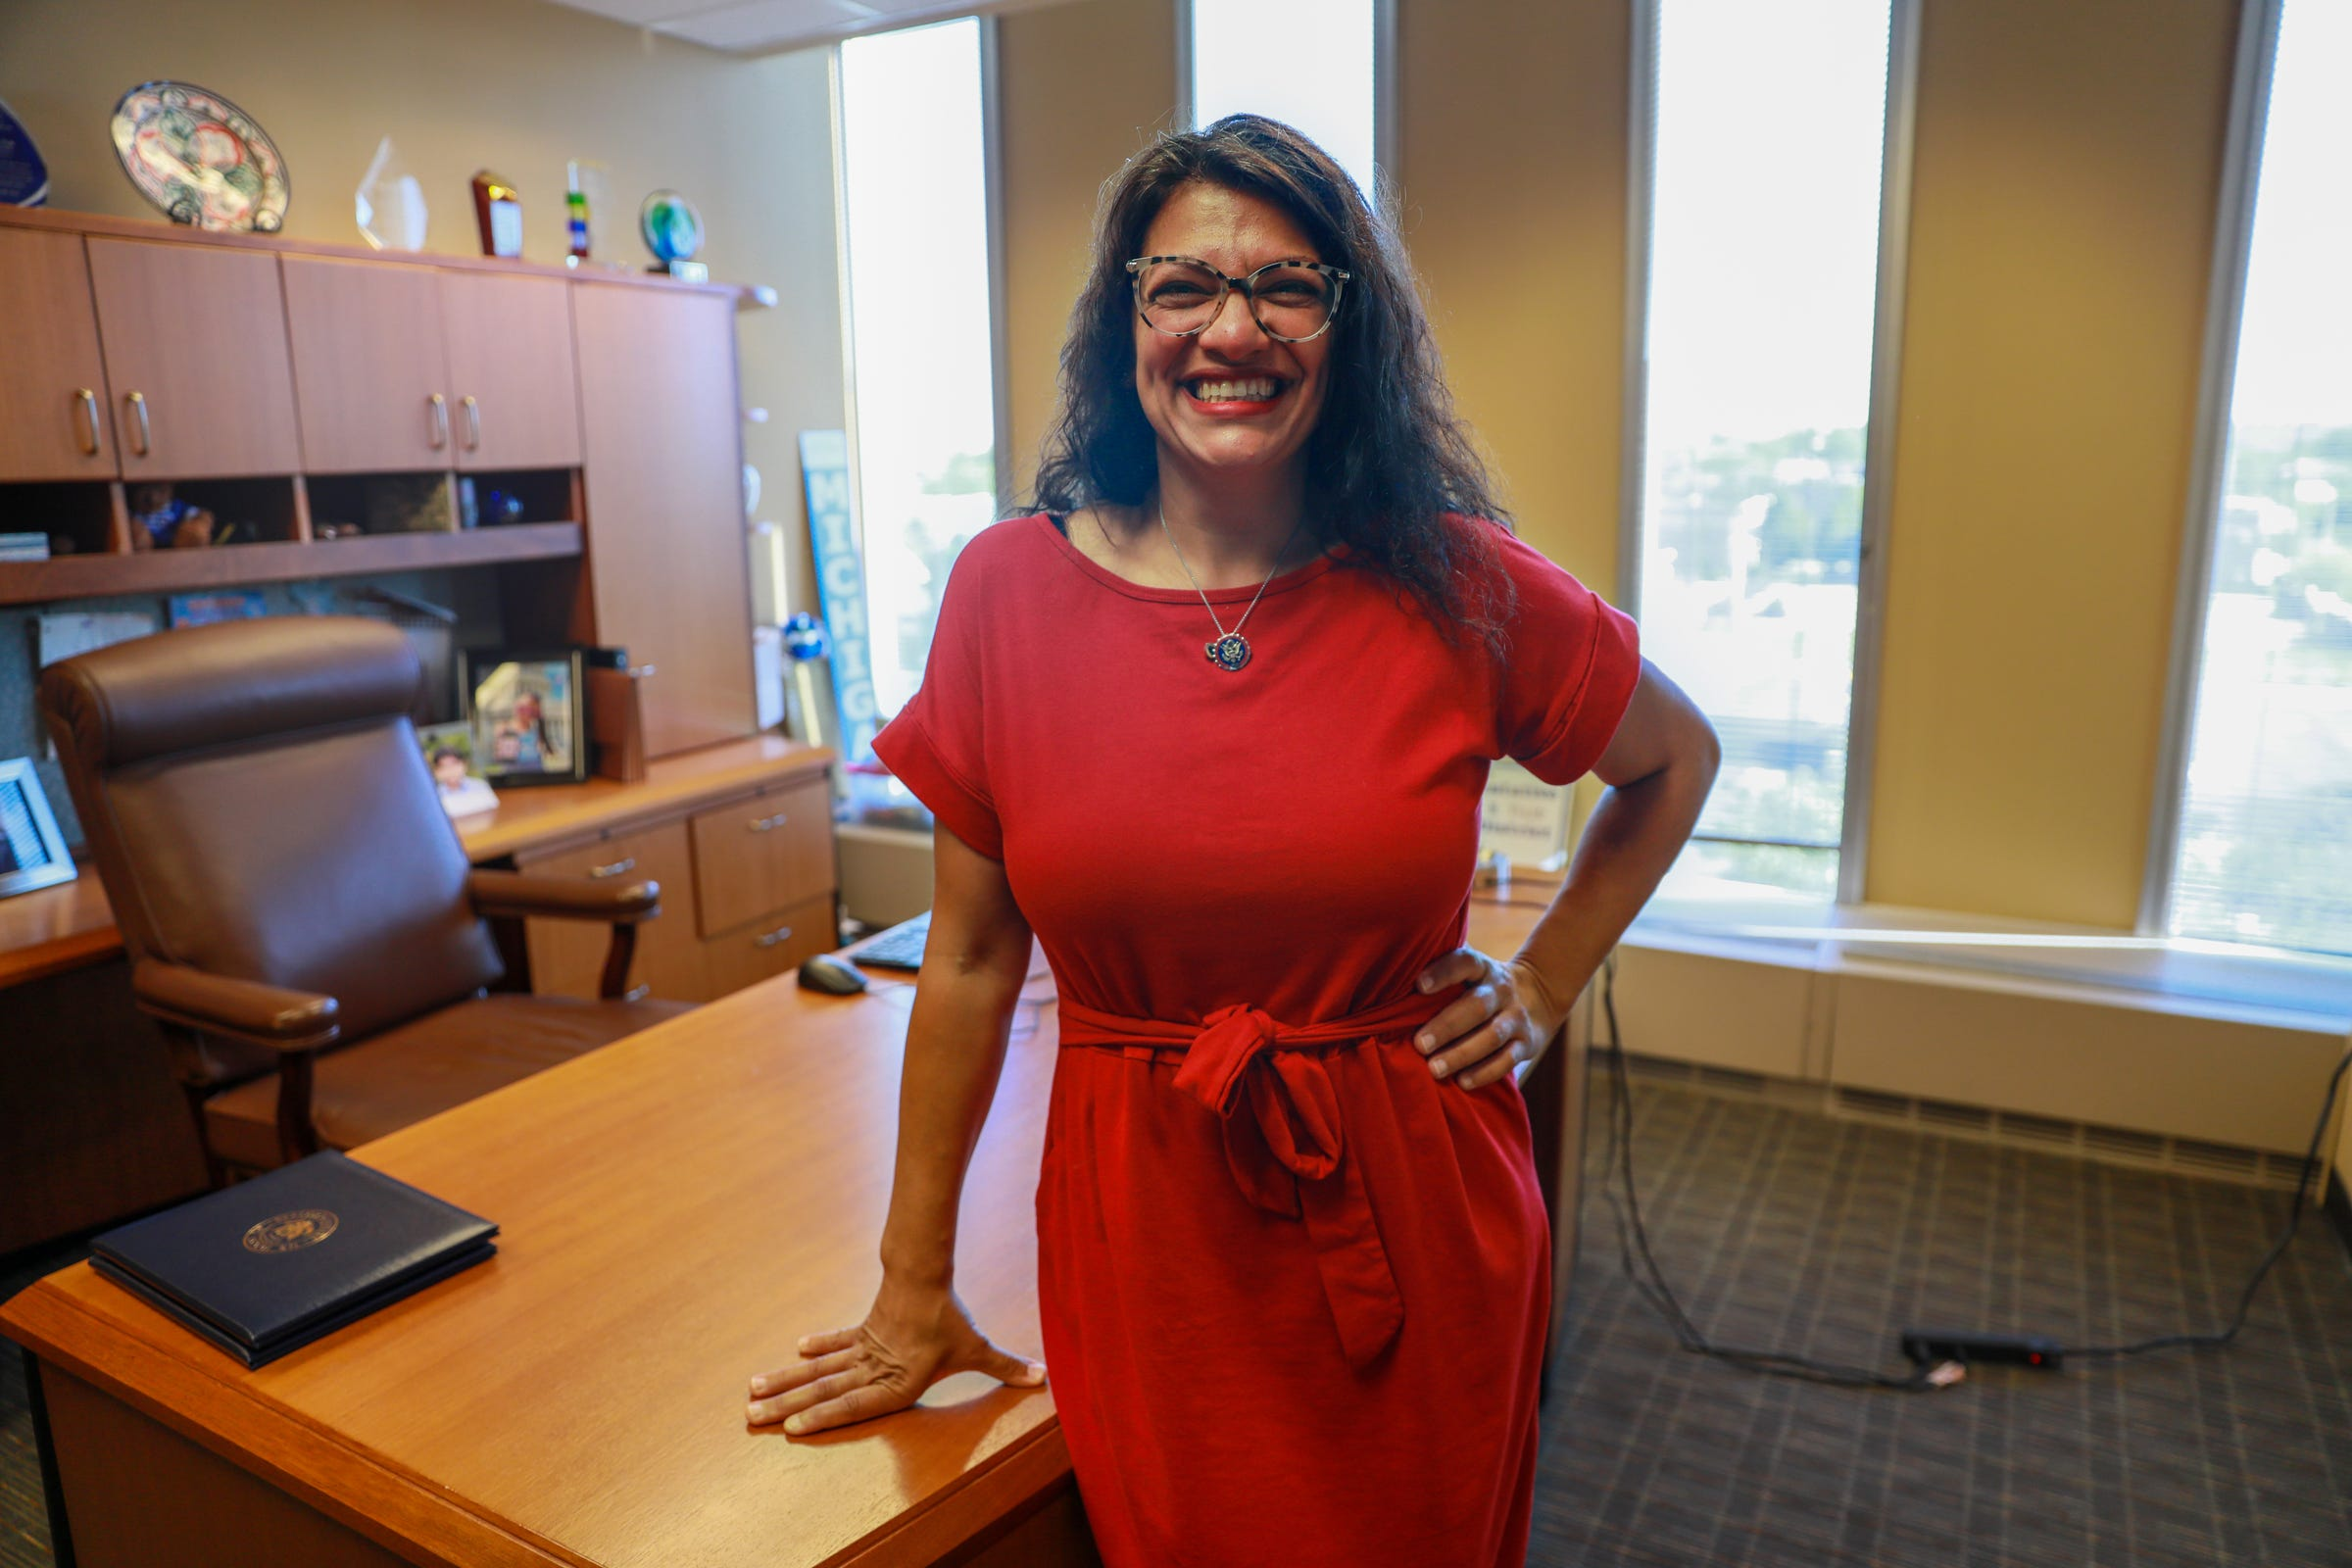 """Twenty years ago, U.S. Rep. Rashida Tlaib was 25, the American-born daughter of Palestinian immigrants, working her way through law school and working at Dearborn-based social service agency ACCESS. """"Working at the largest Arab American human services agency in the country, all of a sudden we became a target. We had to stop mourning at that moment, and start reacting to what would come next,"""" Tlaib said. In the two decades since, she has become Michigan's first Muslim female lawmaker, one of the first two Muslim women to serve in the U.S. Congress, a proud mother of two sons and a recipient of an unending stream of vile hate mail and dangerous threats that Tlaib says existed before 9/11. 9/11 was just the vehicle."""